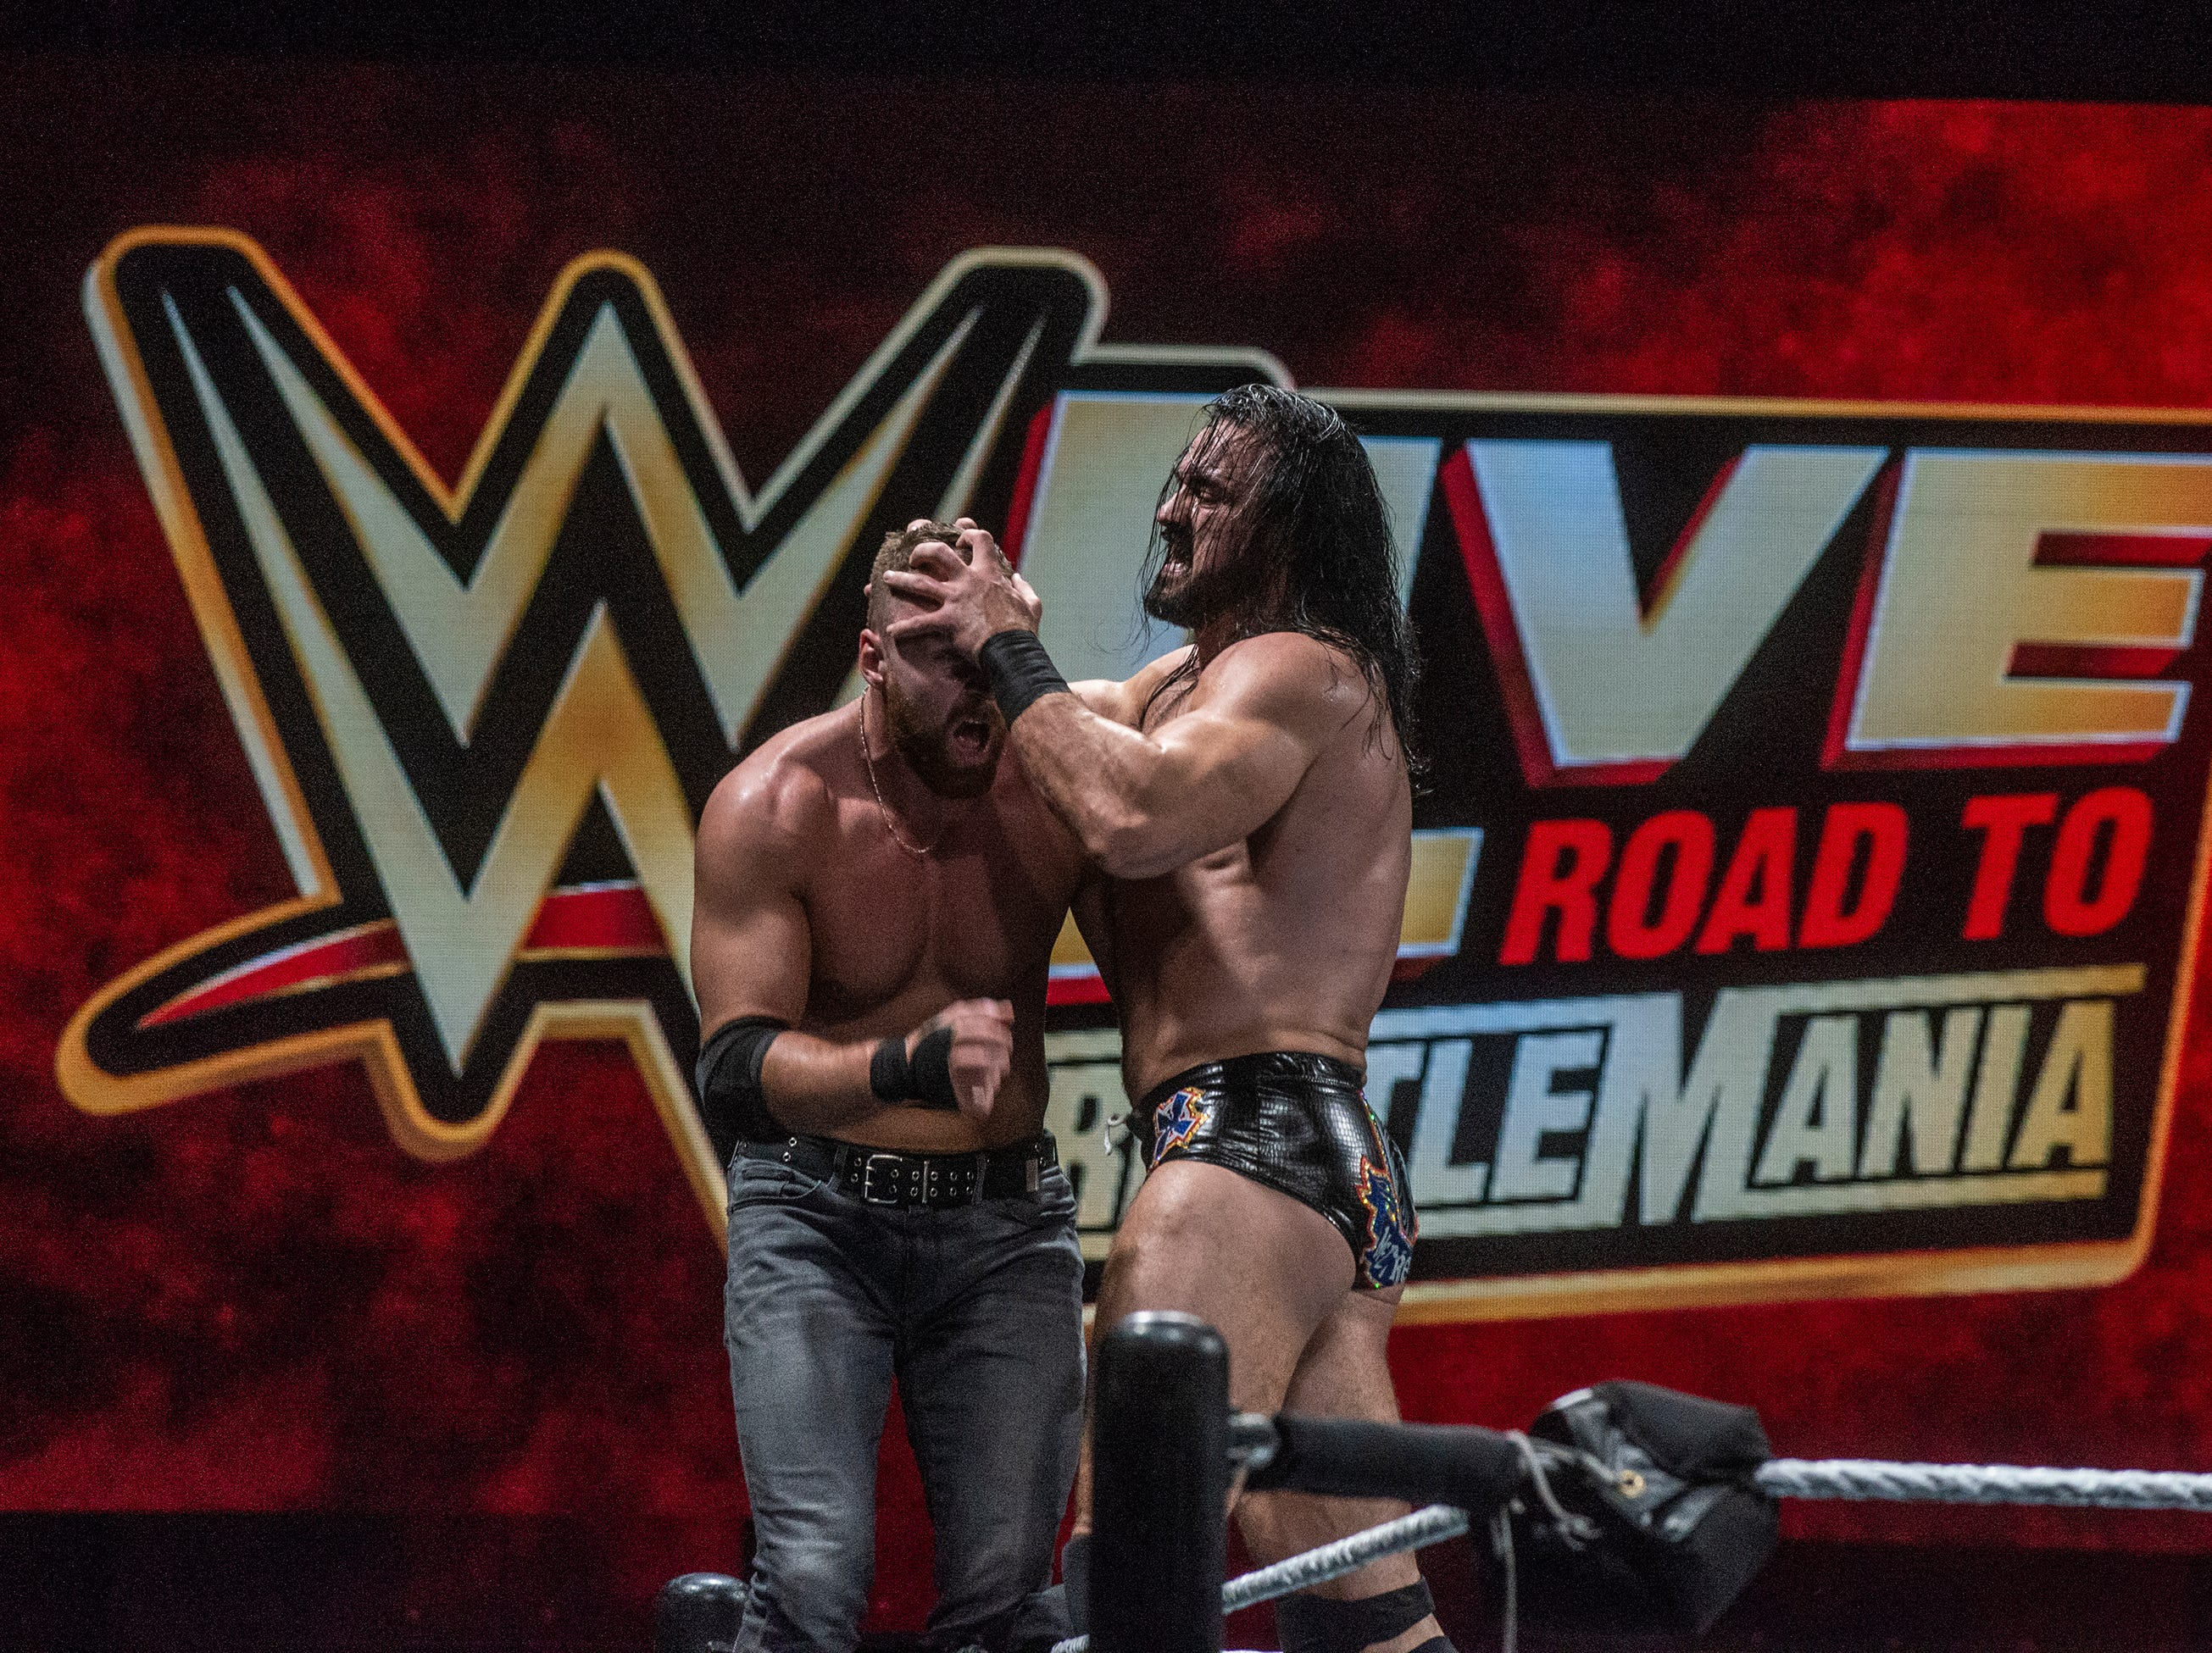 Dean Ambrose and Drew McIntyre fight it out on the top rope. WWE Live Road to Wrestlemania came to Garrett Coliseum in Montgomery on Sunday, Feb. 24, 2019.